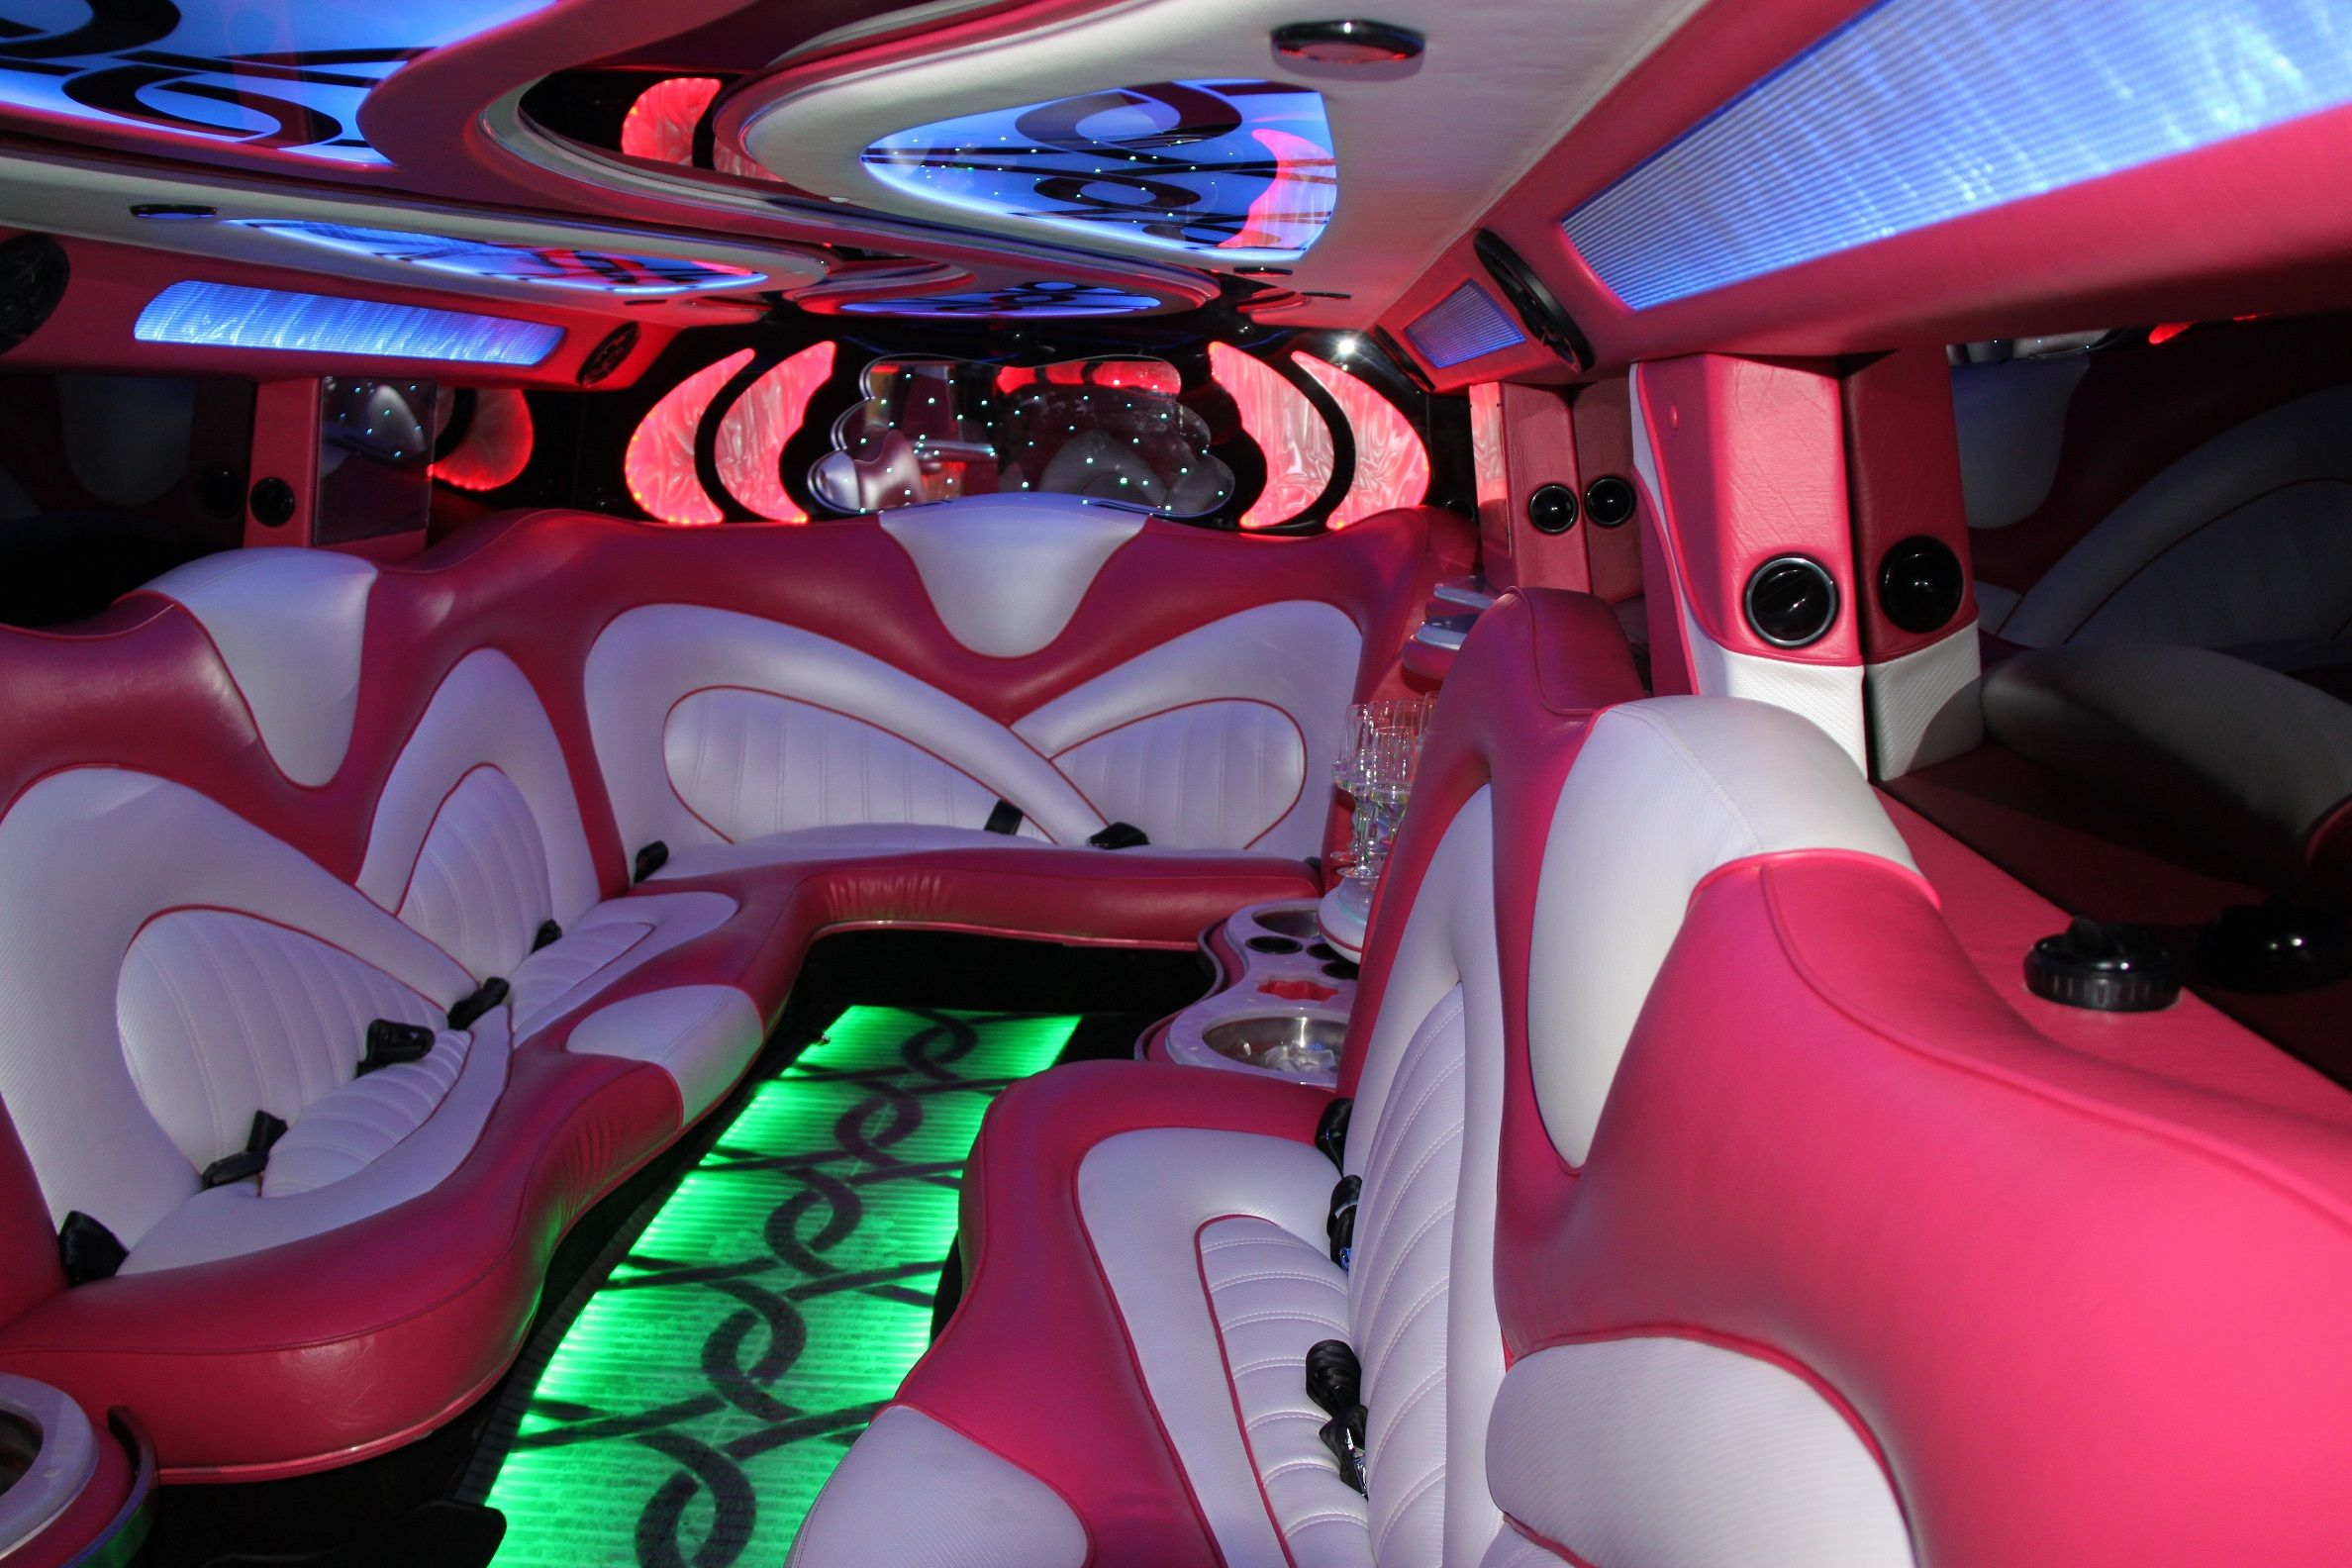 Showtime Limousines pink hummer perth interior | LIMOUSINES ... | pink hummer hire perth